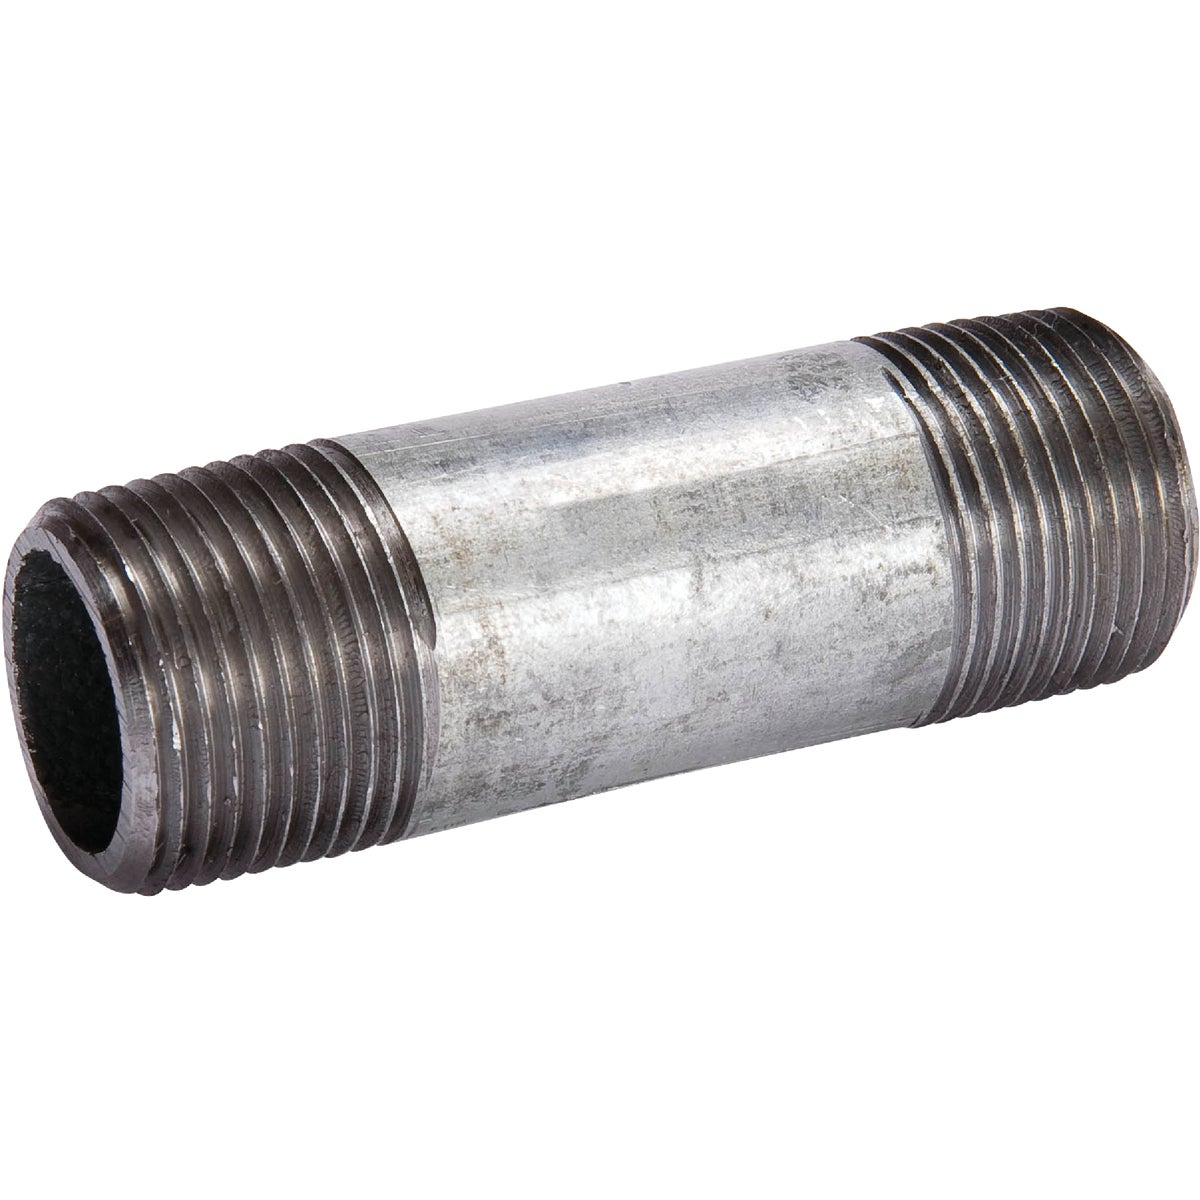 1/4X4-1/2 GALV NIPPLE - 10207 by Southland Pipe Nippl